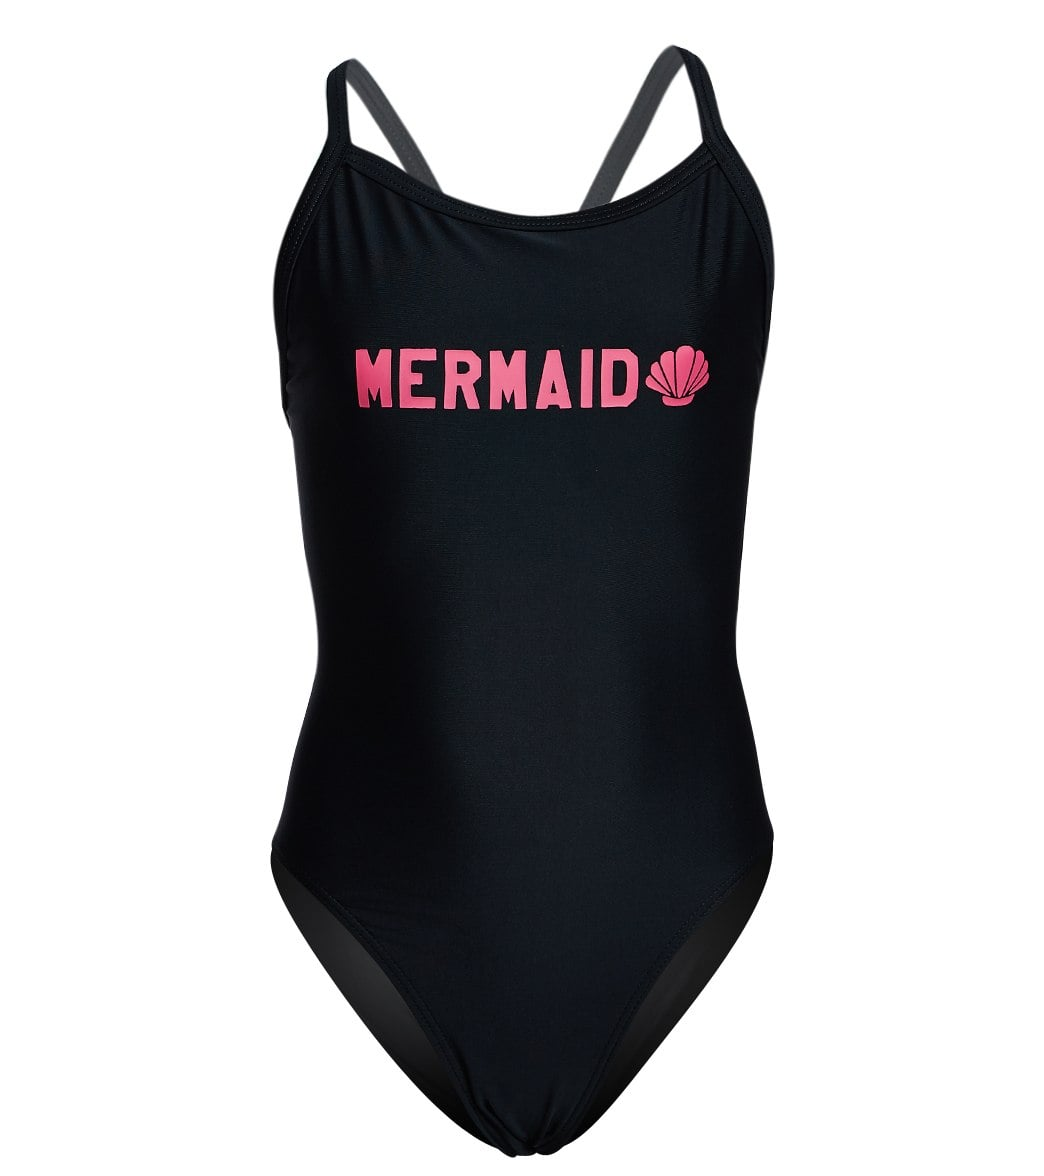 d6e4470ea195e iSwim Mermaid Thin Strap One Piece Swimsuit Youth (22-28) at SwimOutlet.com